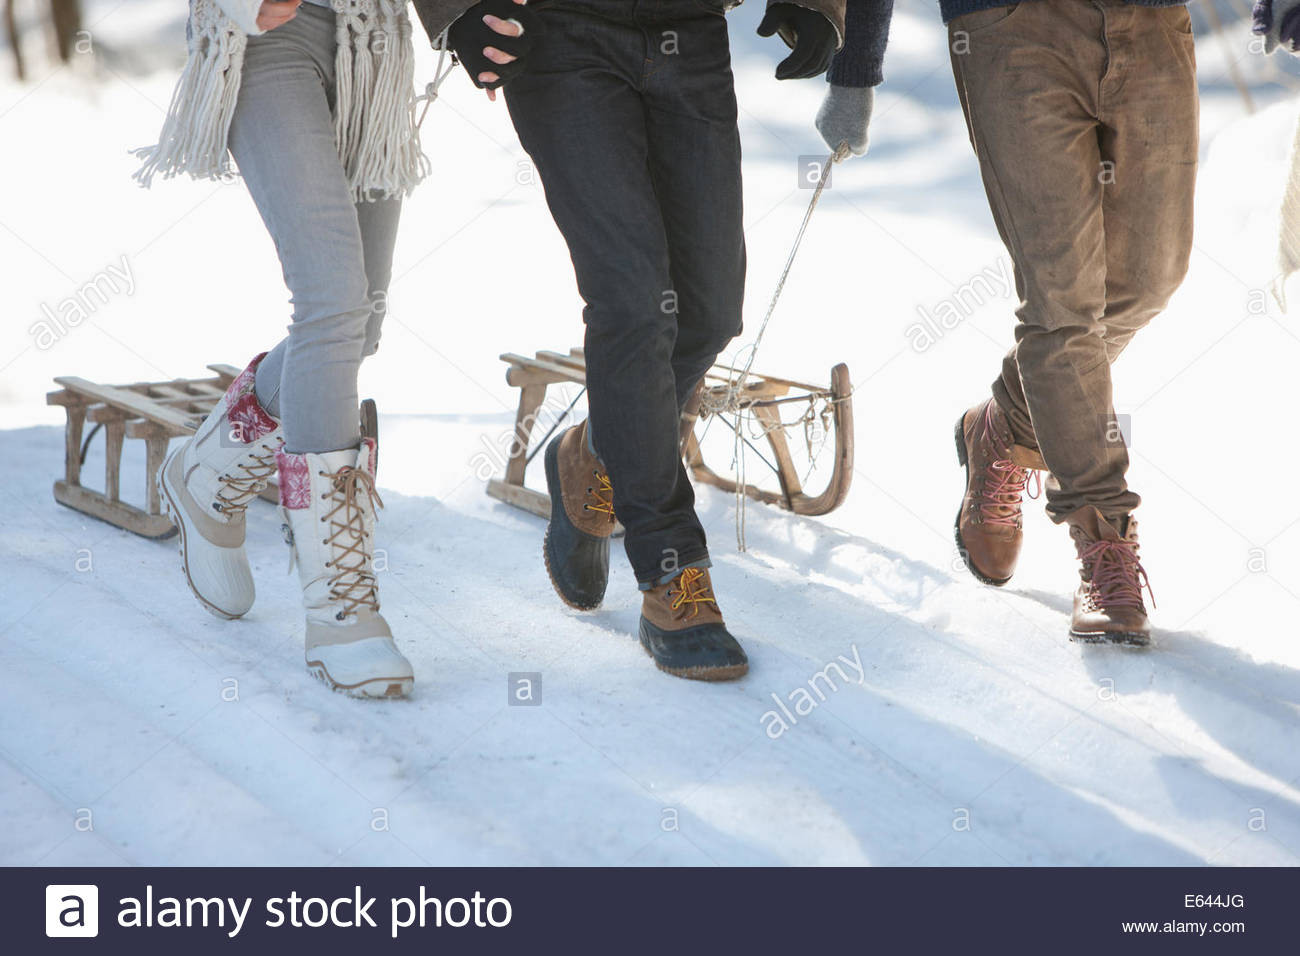 Three people with sled in snowy landscape, low section - Stock Image